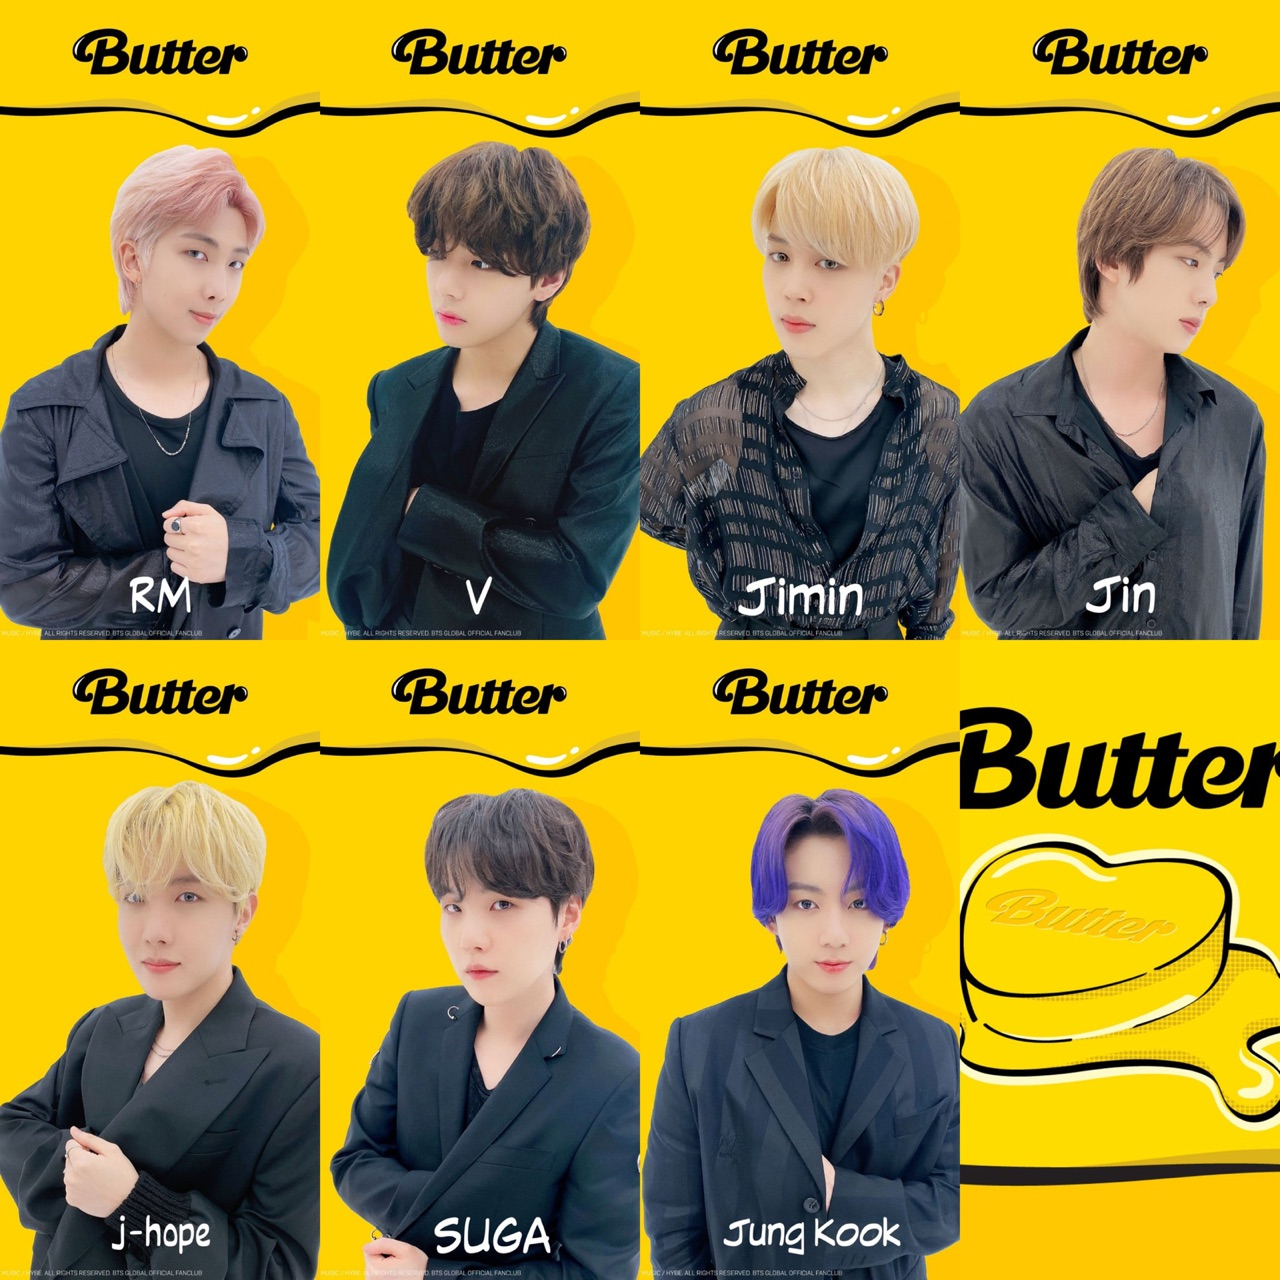 butter, rm, and bts image